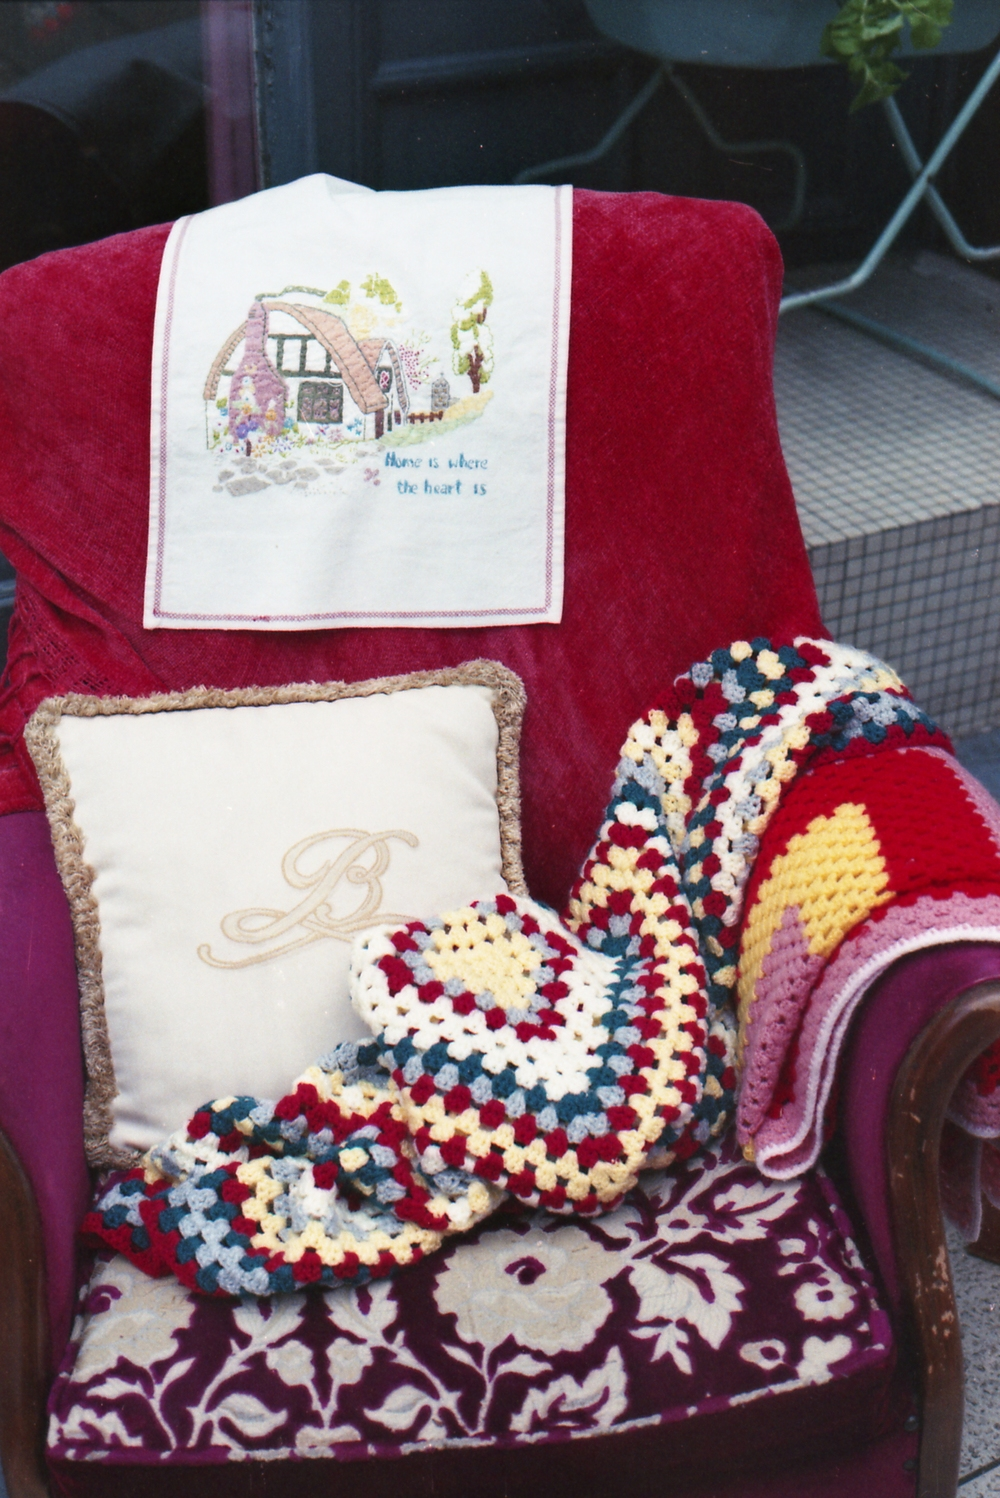 197/366 - I can't help it, I see crochet/knitting and I want to take a photo. The colours. Also I kind of wanted to take it all home, chair and all!